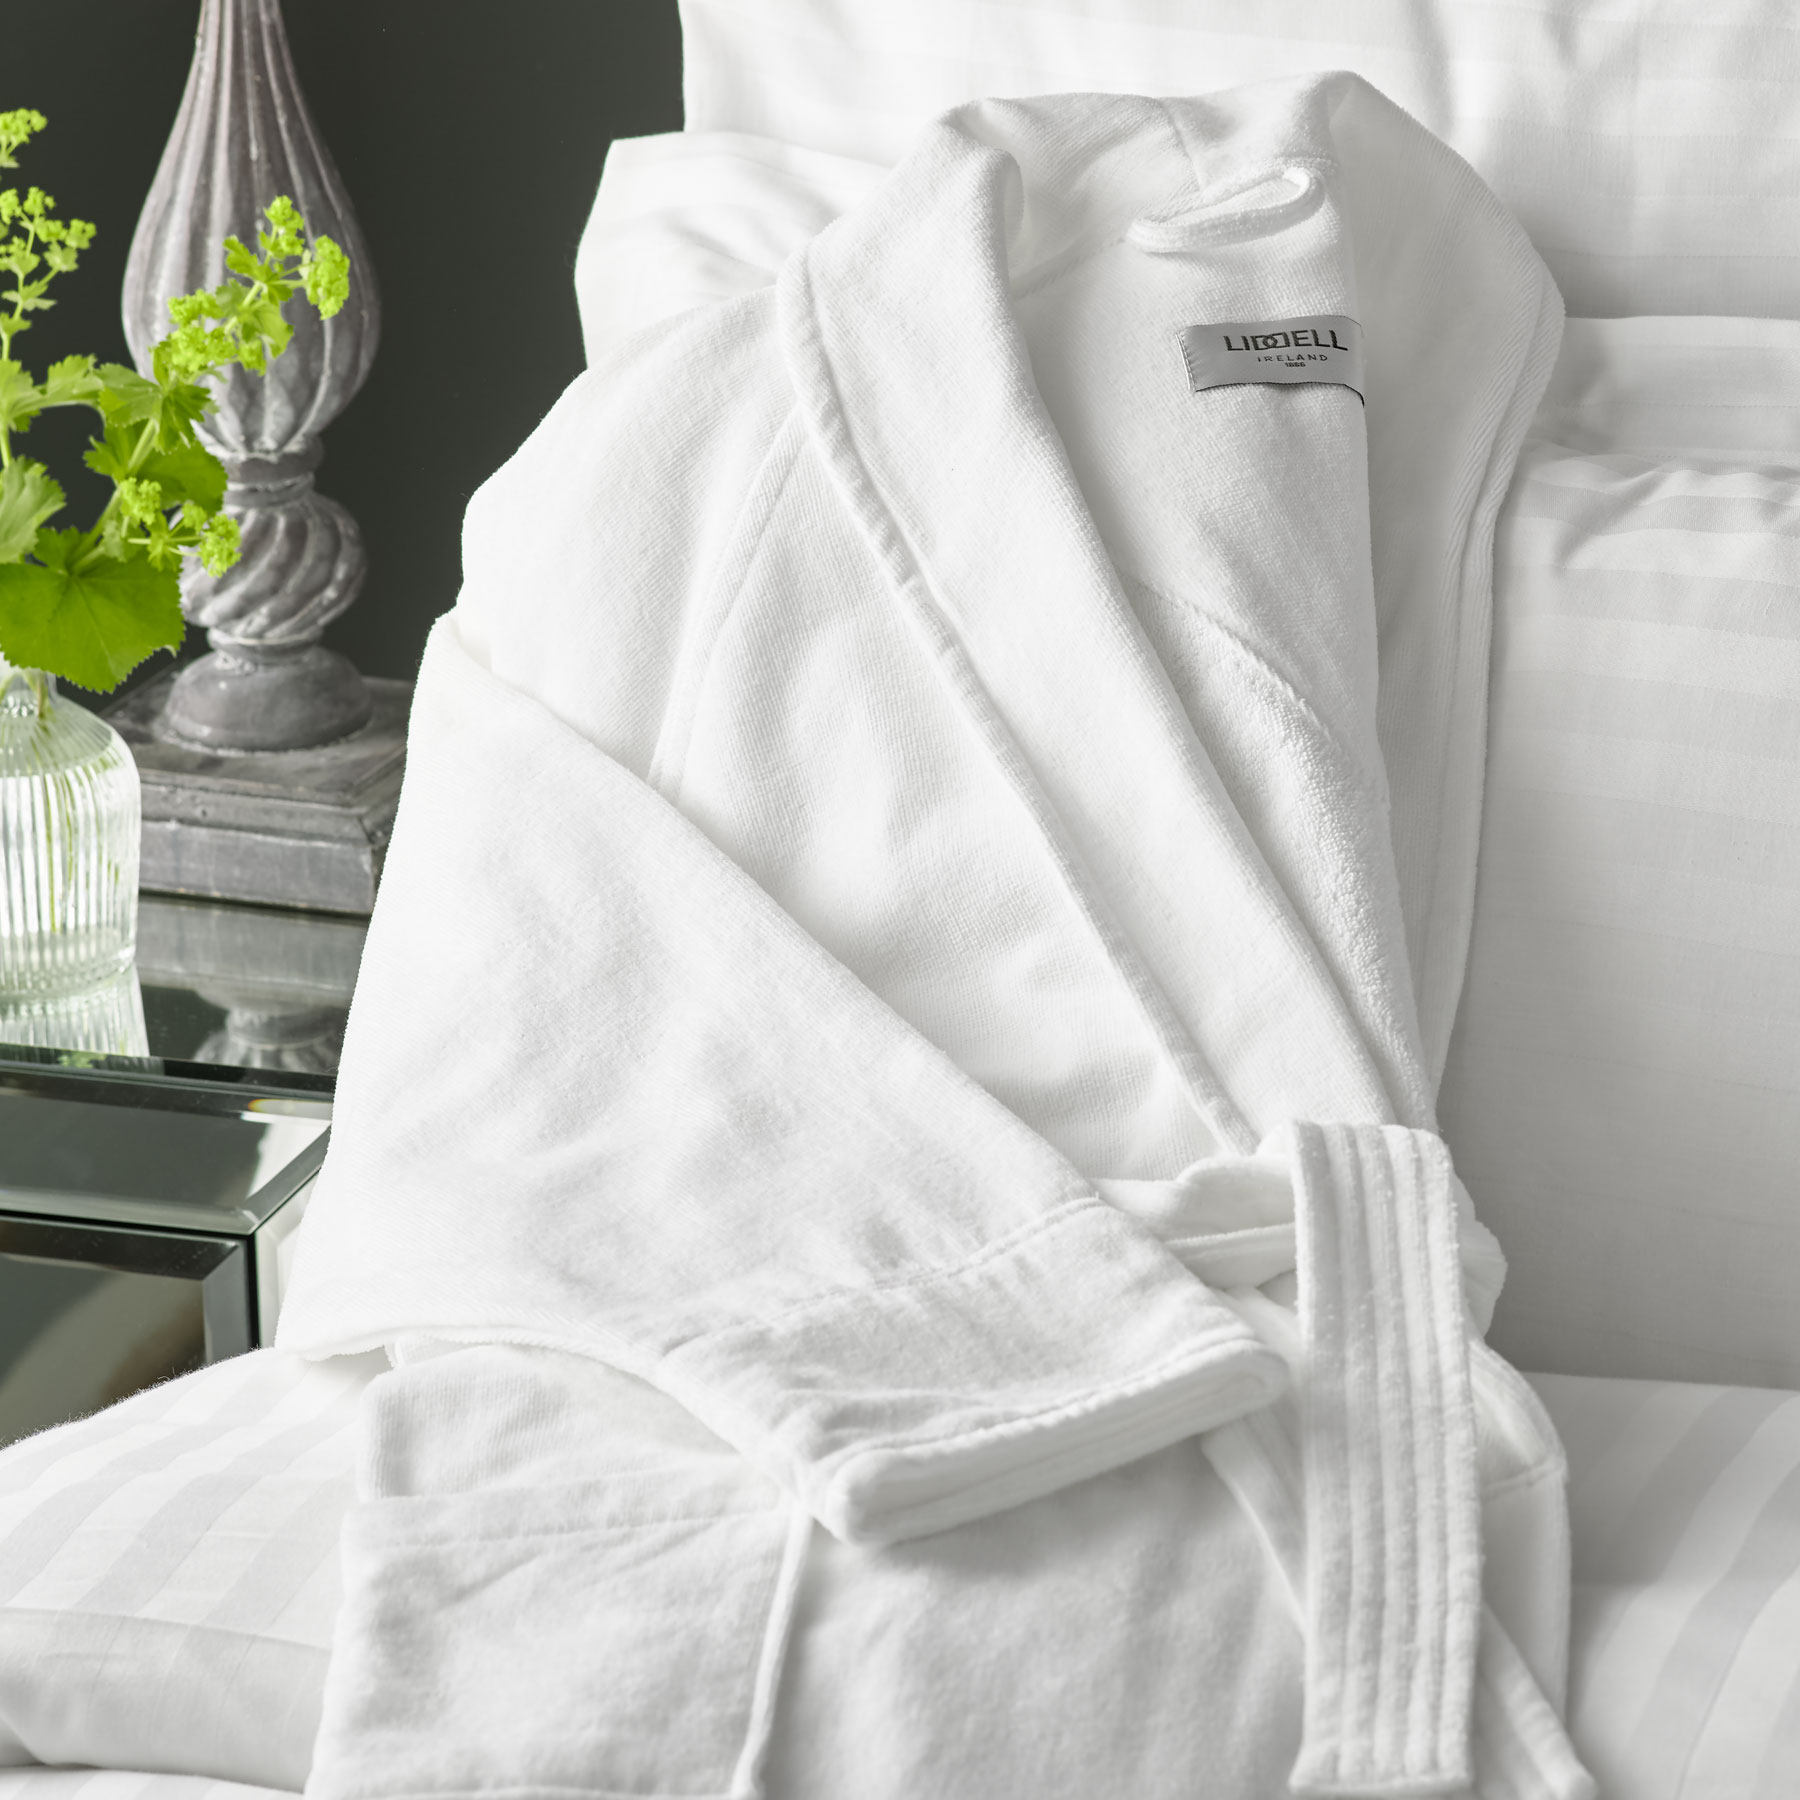 View Spa Bathrobes Collection Details